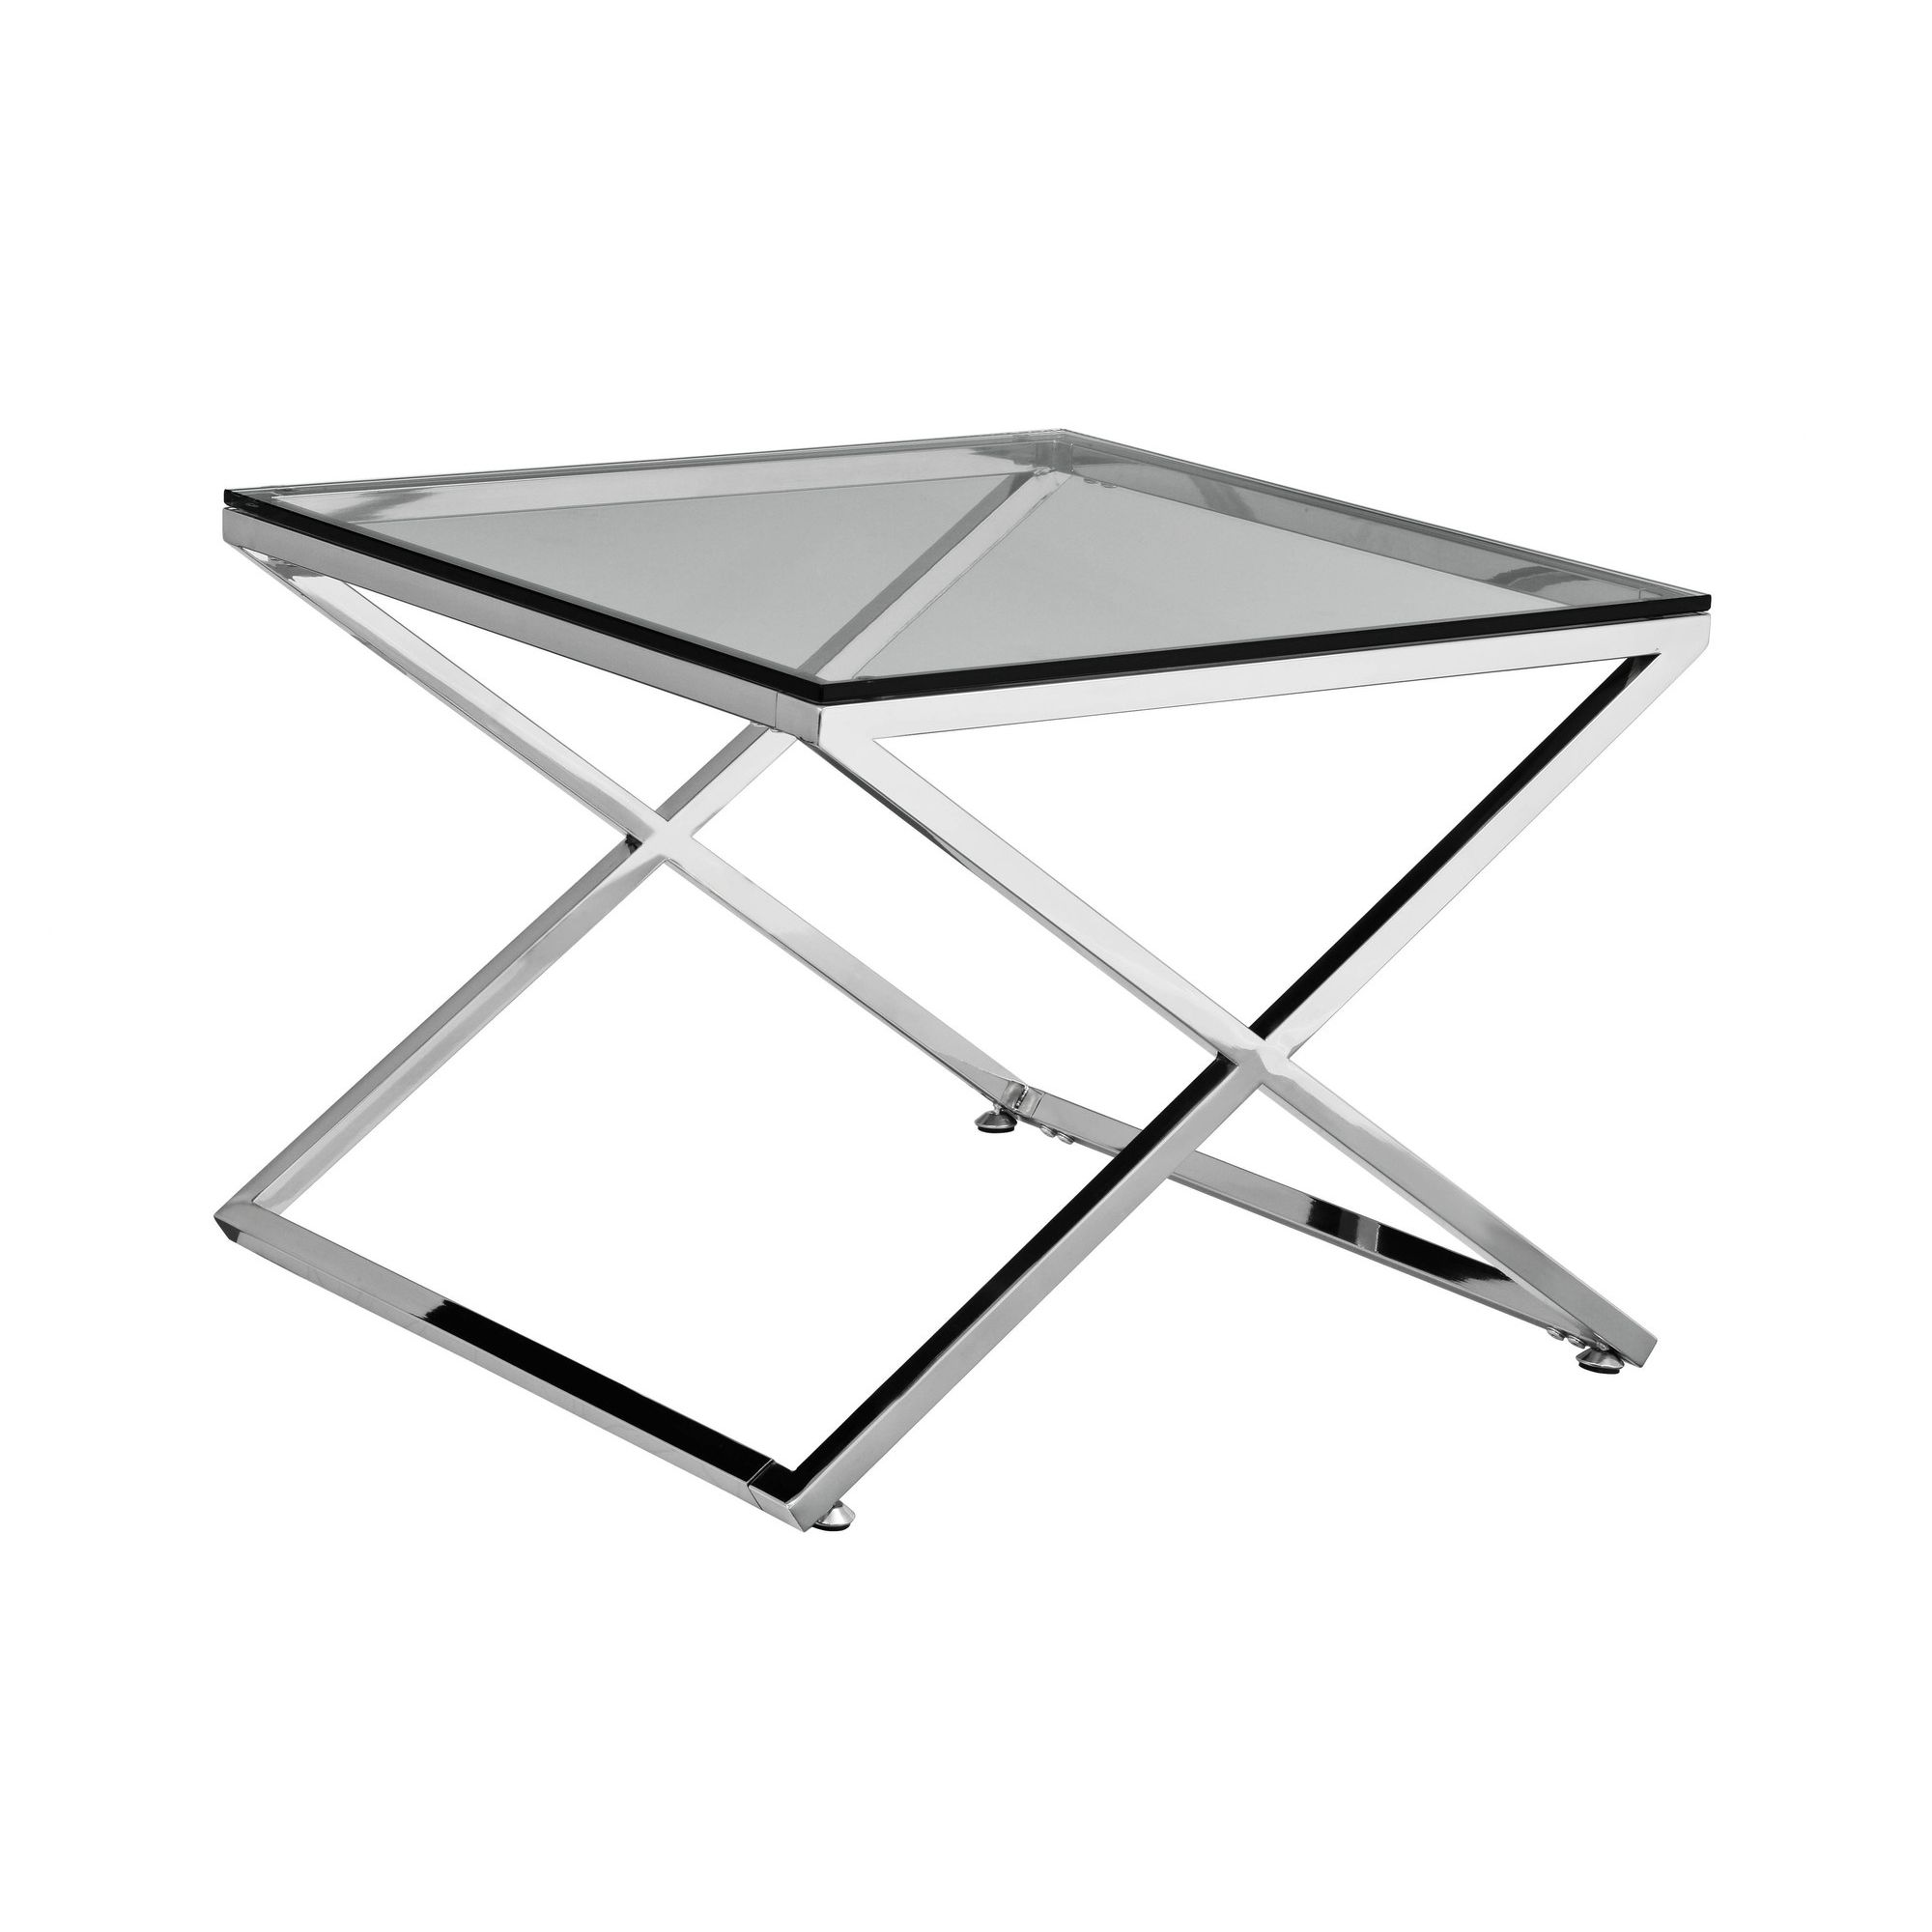 Premier Housewares Criss Cross End Table at Tesco Direct